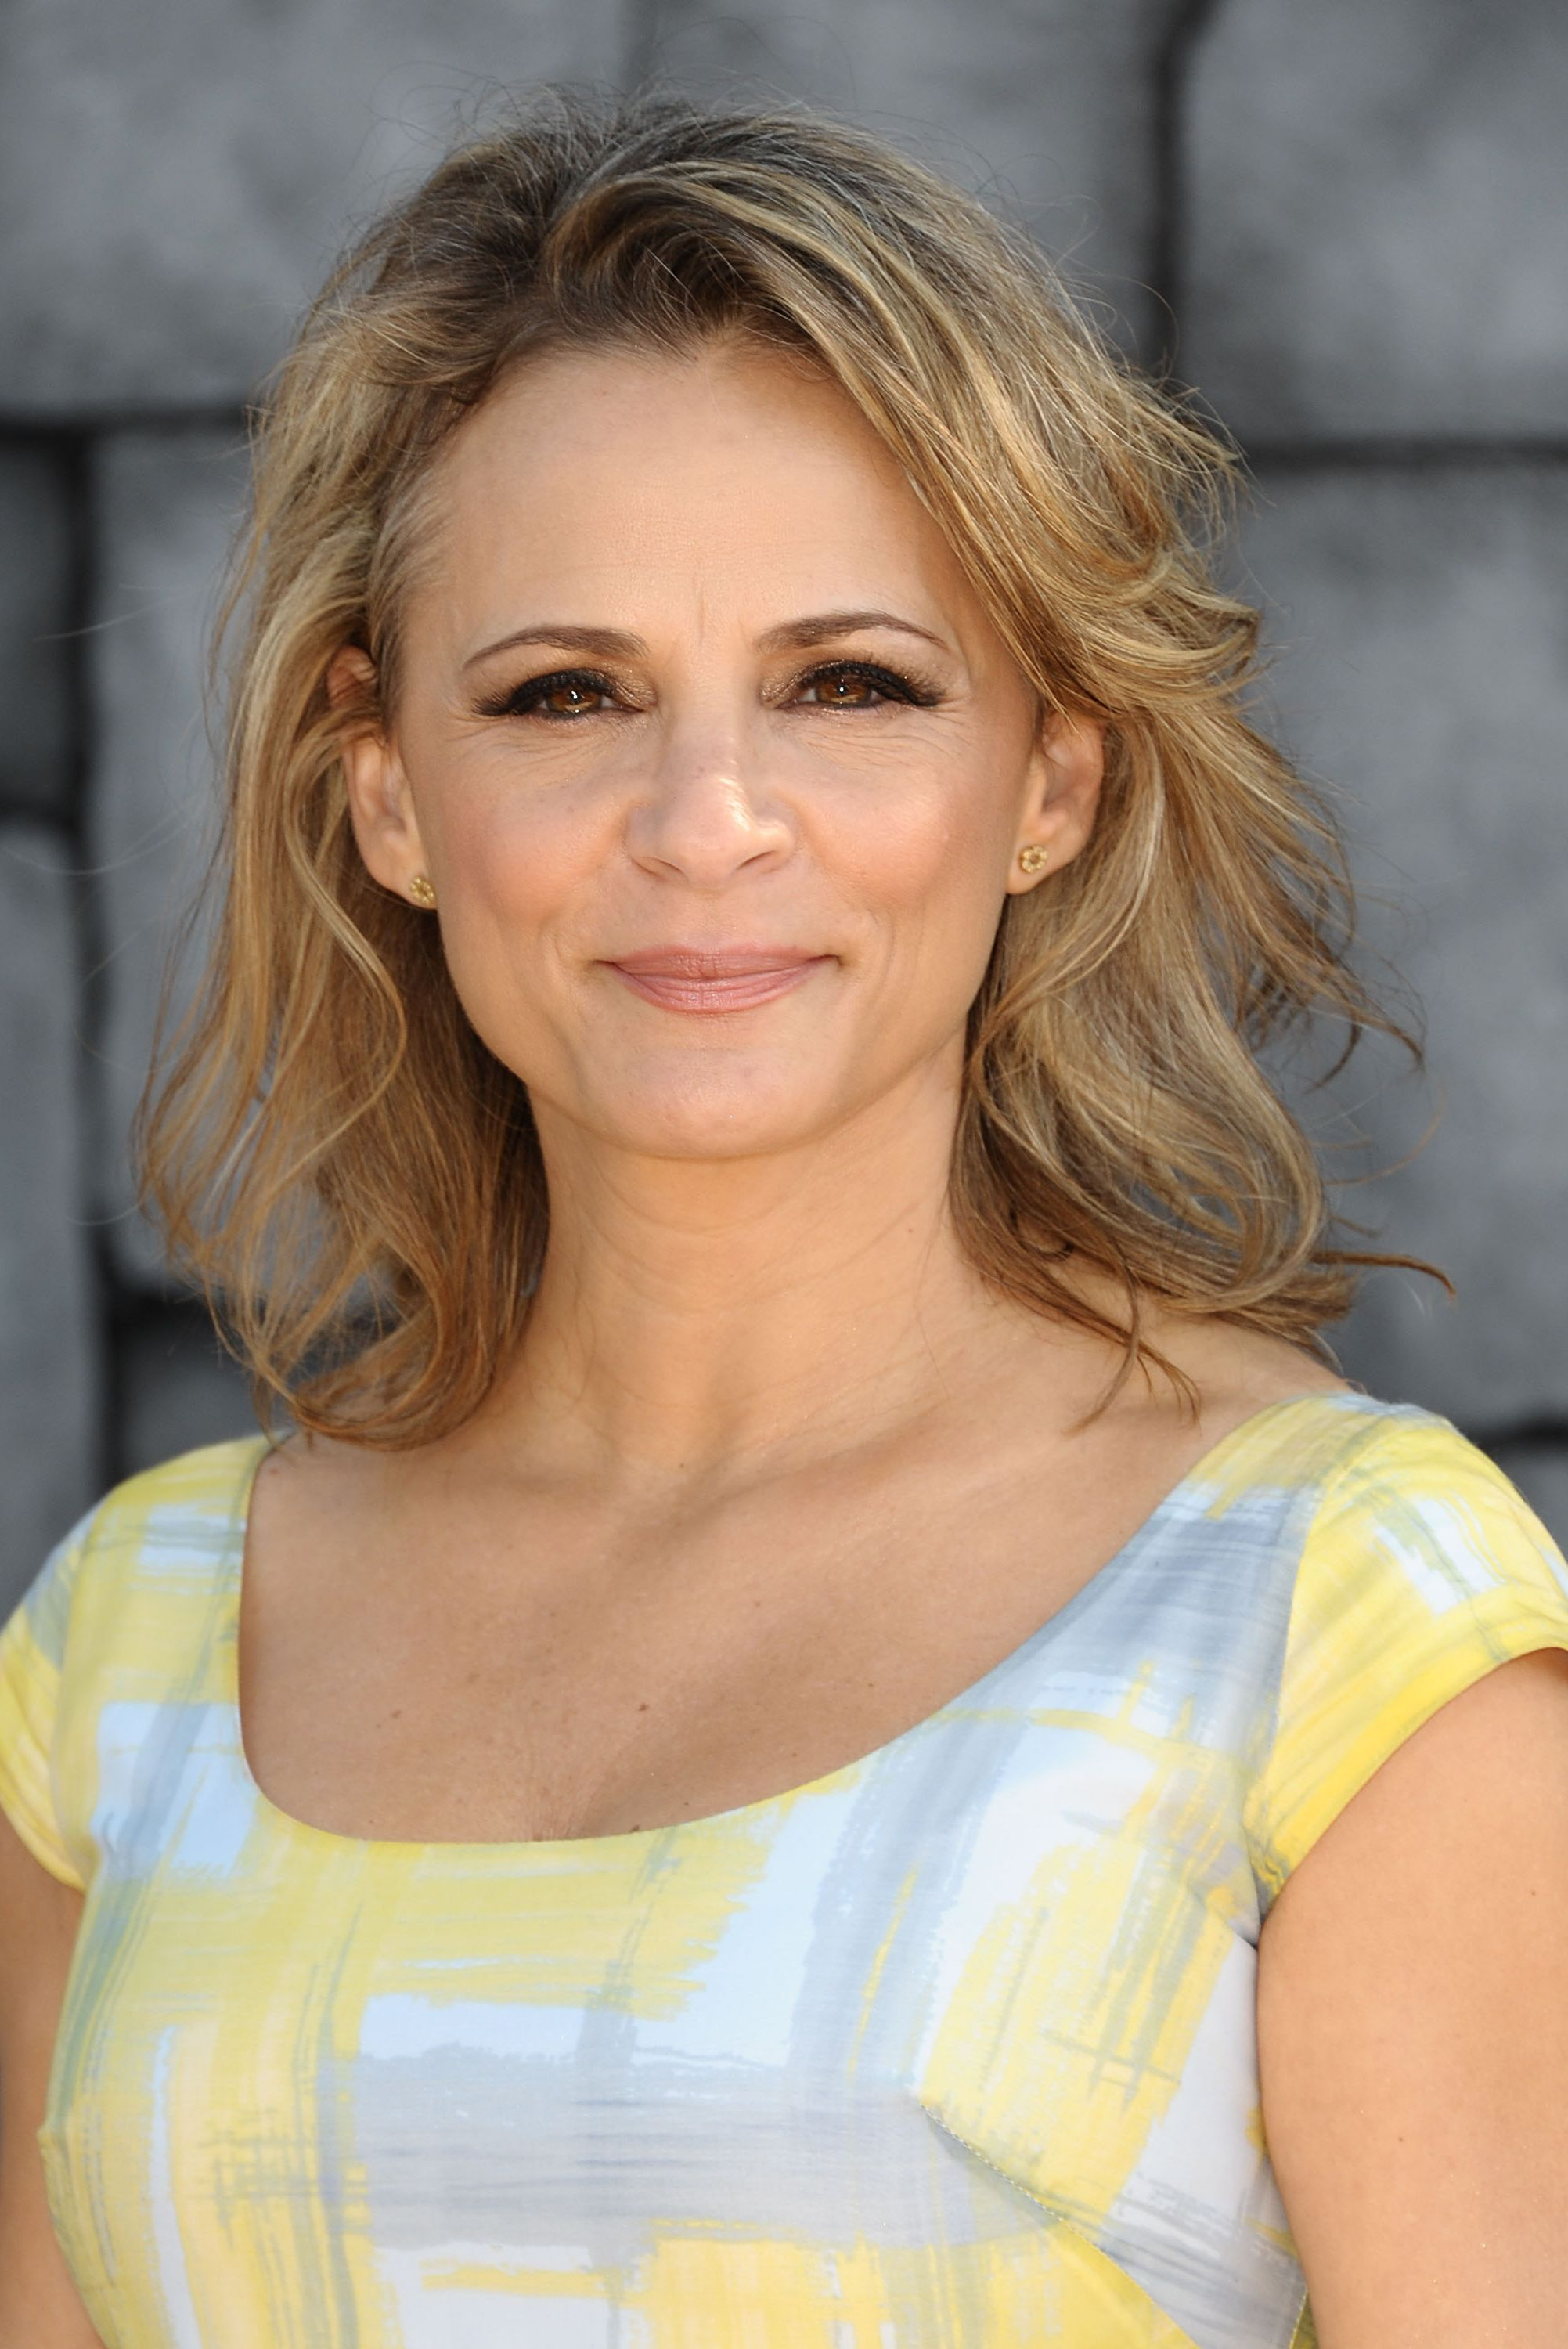 """Amy Sedaris """"I haven't done anything to my face like fillers or Botox, but it's fine if people want to do that,"""" Amy Sedaris told Into The Gloss . """"For me, if you're trying to do something that doesn't look obvious, why are you even doing it? I went to a party recently and two people that had just moved to New York were talking, and I had no idea who they were—I'm not exaggerating. Then when I heard their voices, I was like, Oh my God. I know you! Their hair was dyed, their faces just disappeared—they looked fantastic, but it just canceled out their features so nothing stood out. I'm just afraid I would get it and just want more and more and more. But who knows? Maybe 10 years from now I'll want some voodoo done, and I'll like it."""""""